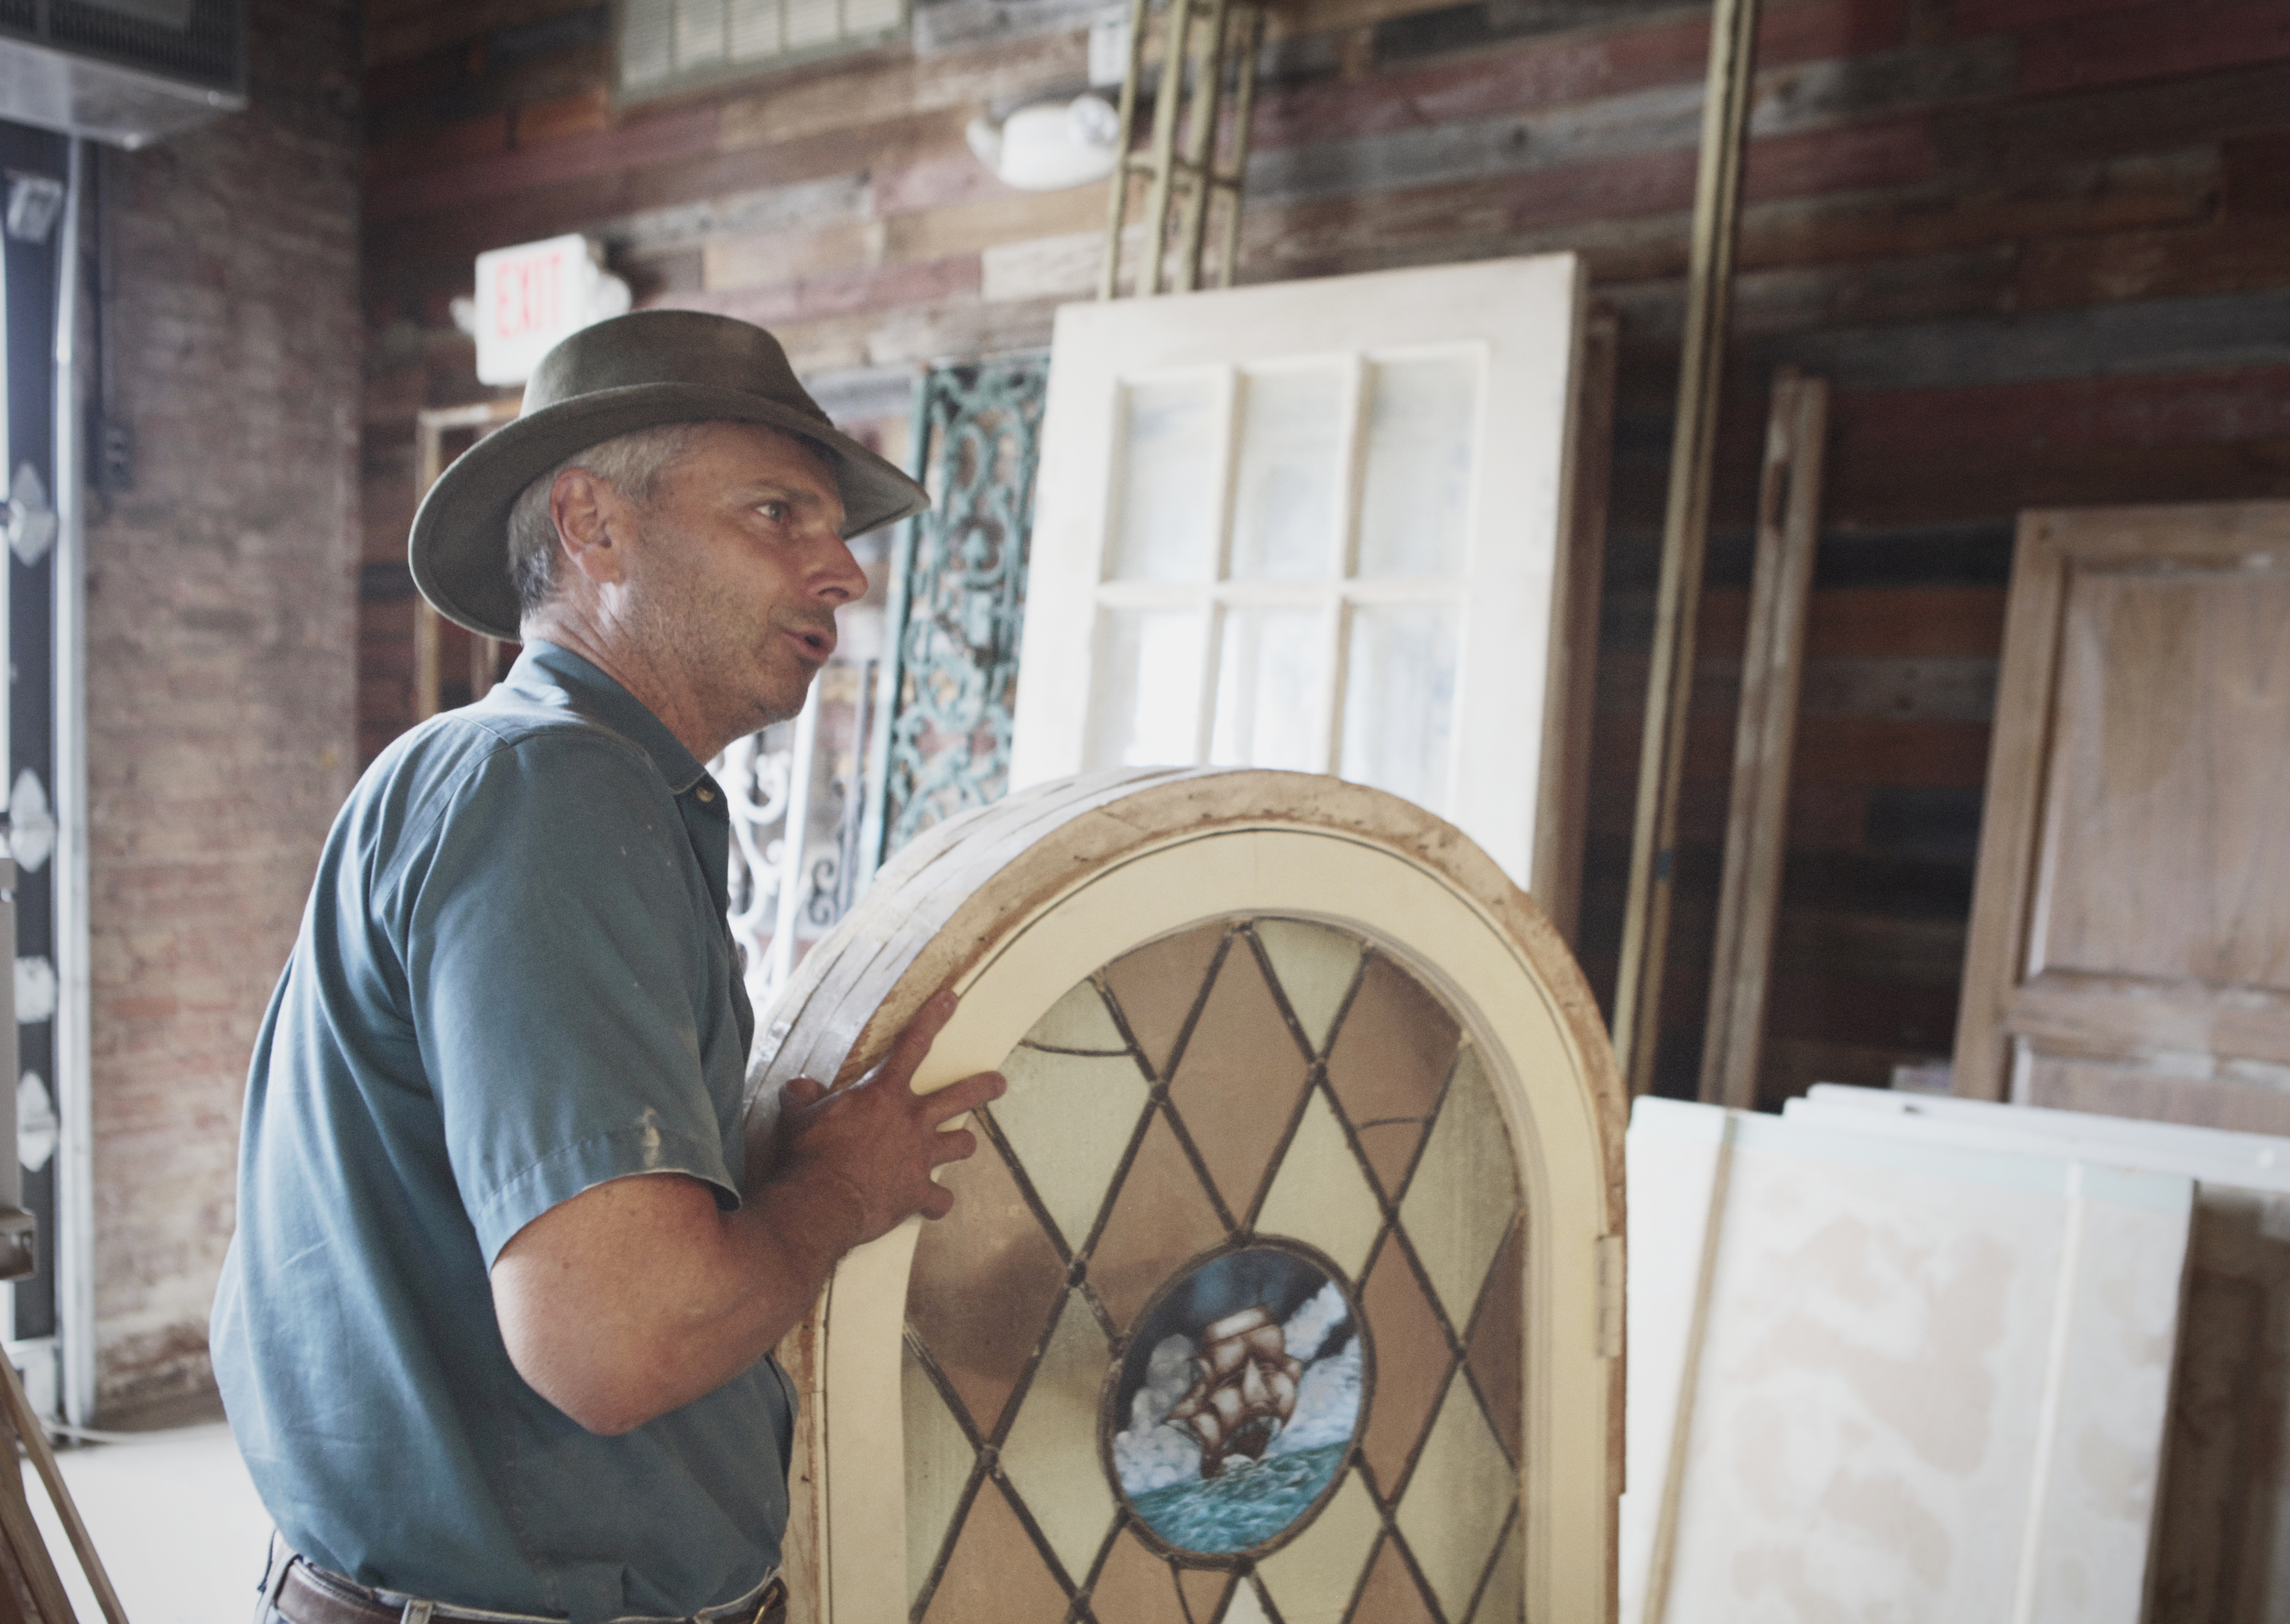 Erik Stensen shows us some of the cool decor that will be up at the new Hoochie's location.